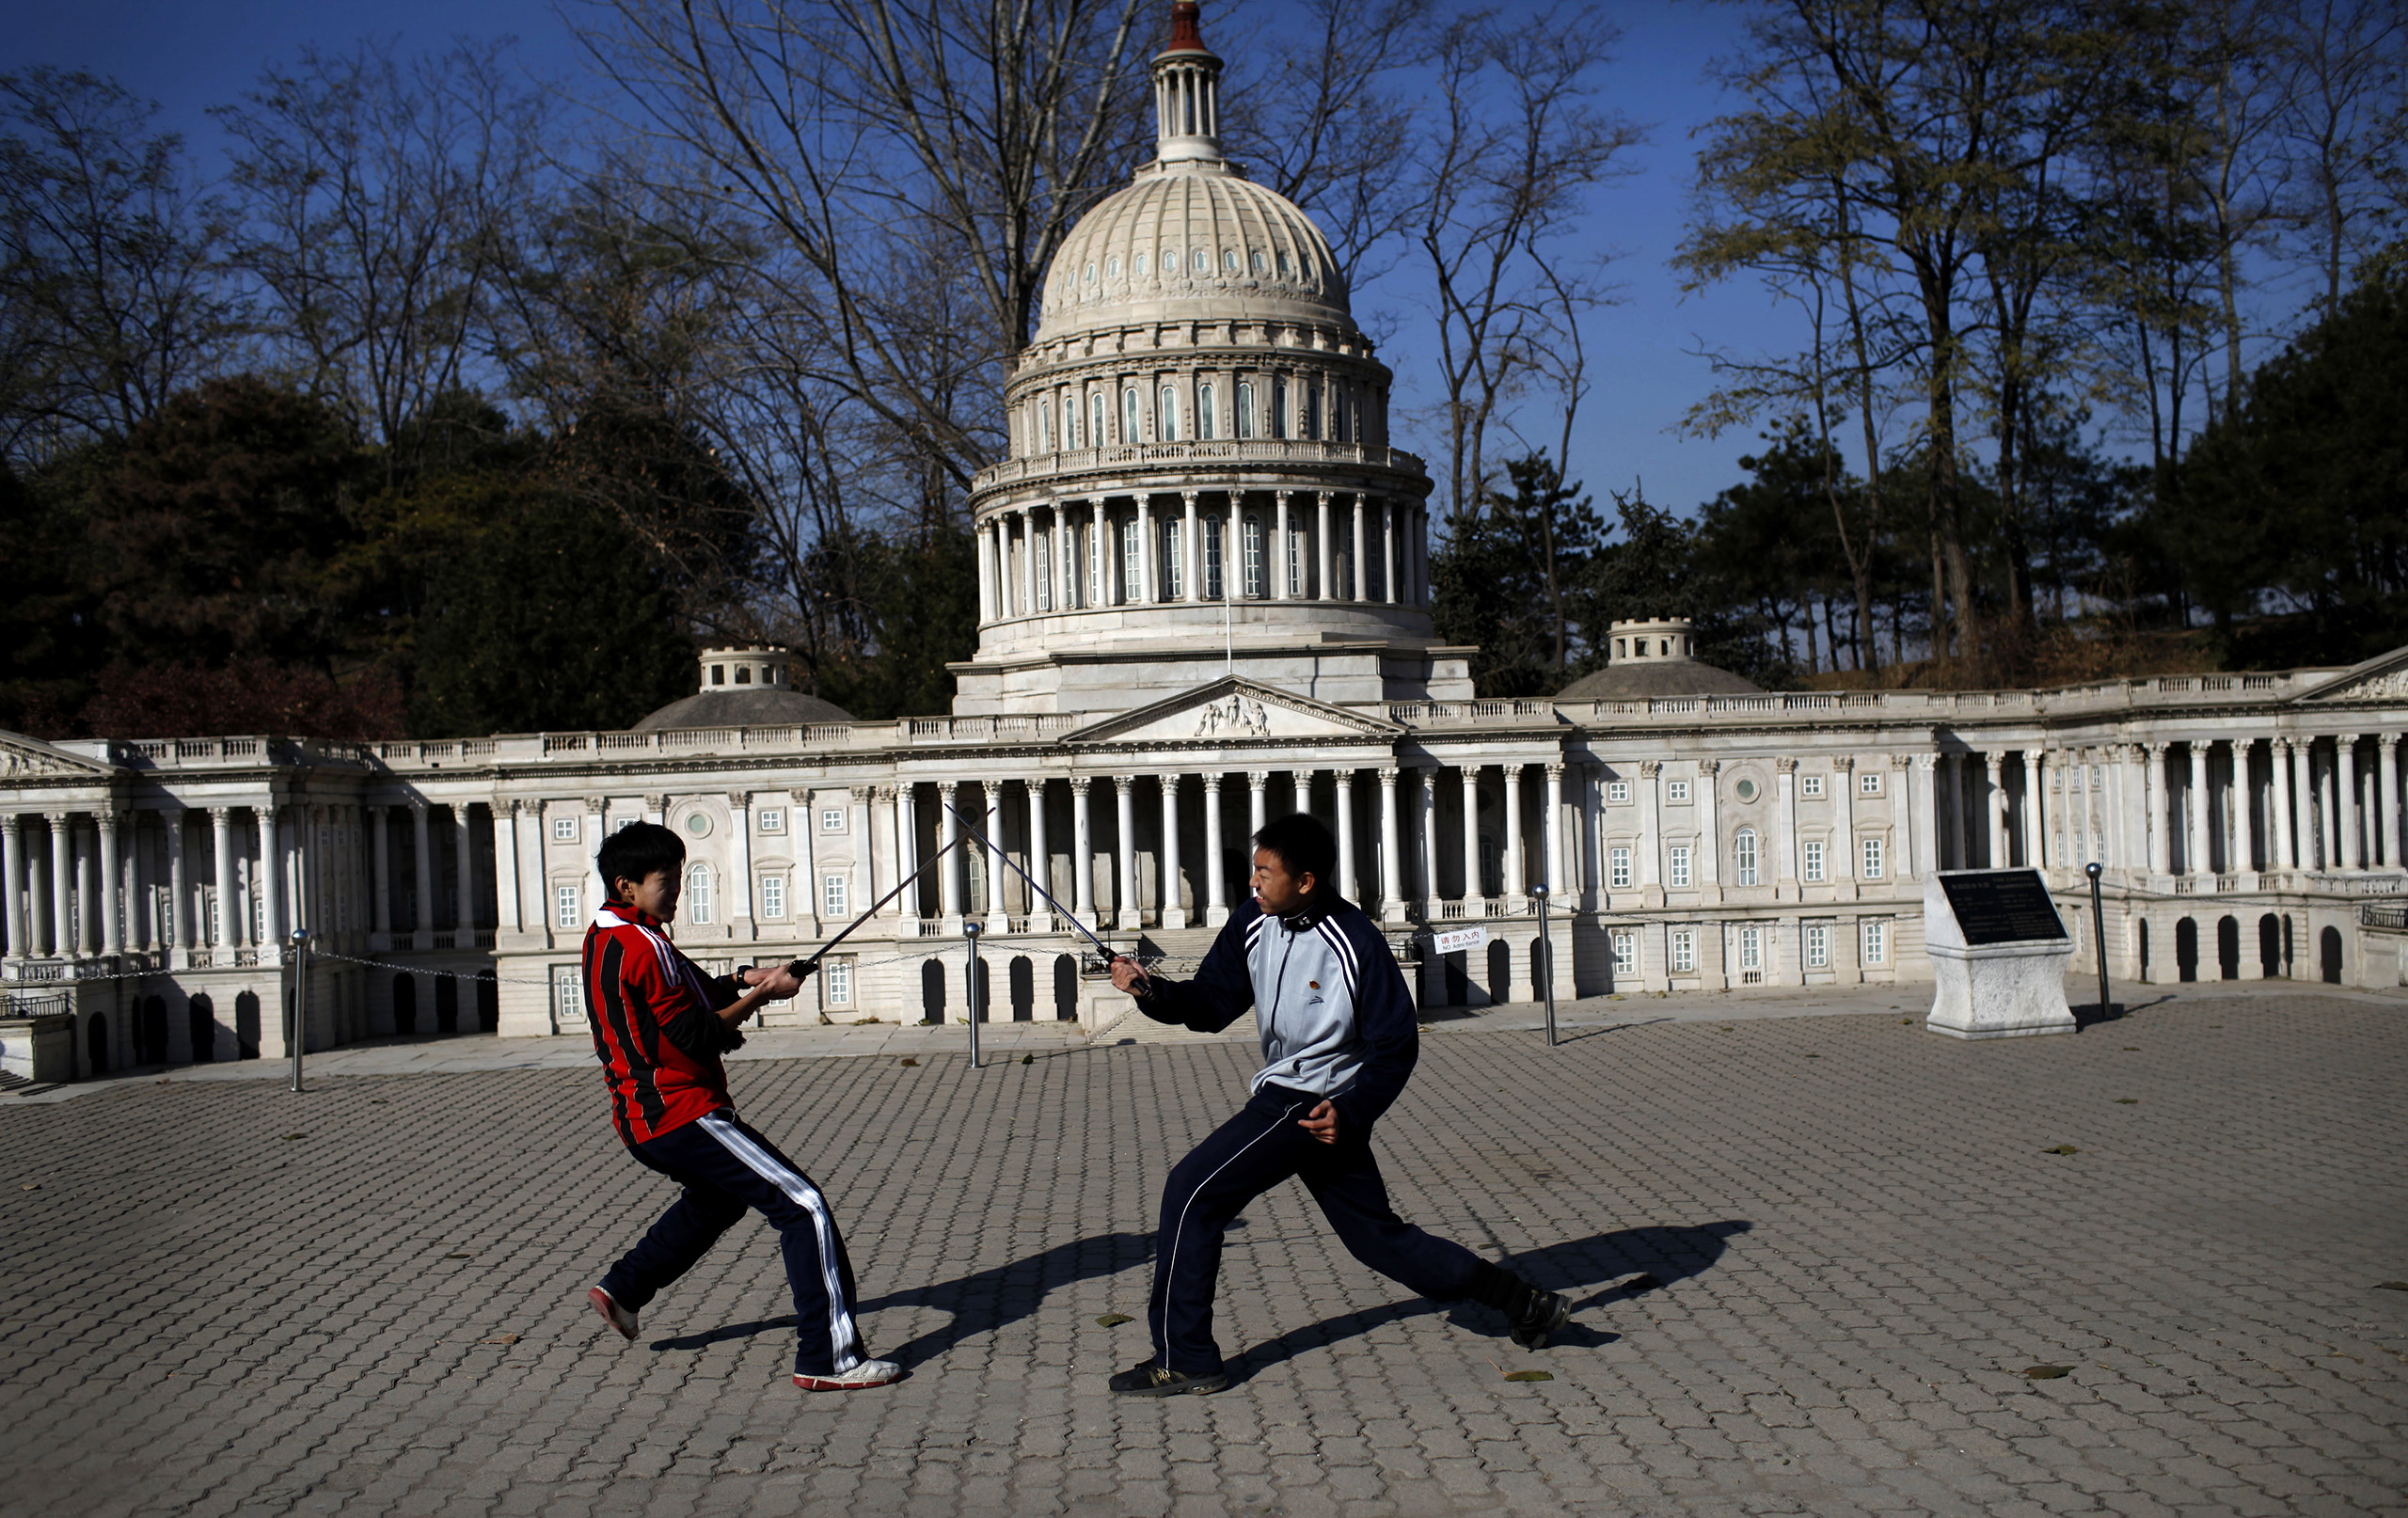 Two boys play-fight with swords in front of the mini replica of the United States Capitol in Beijing World Park.